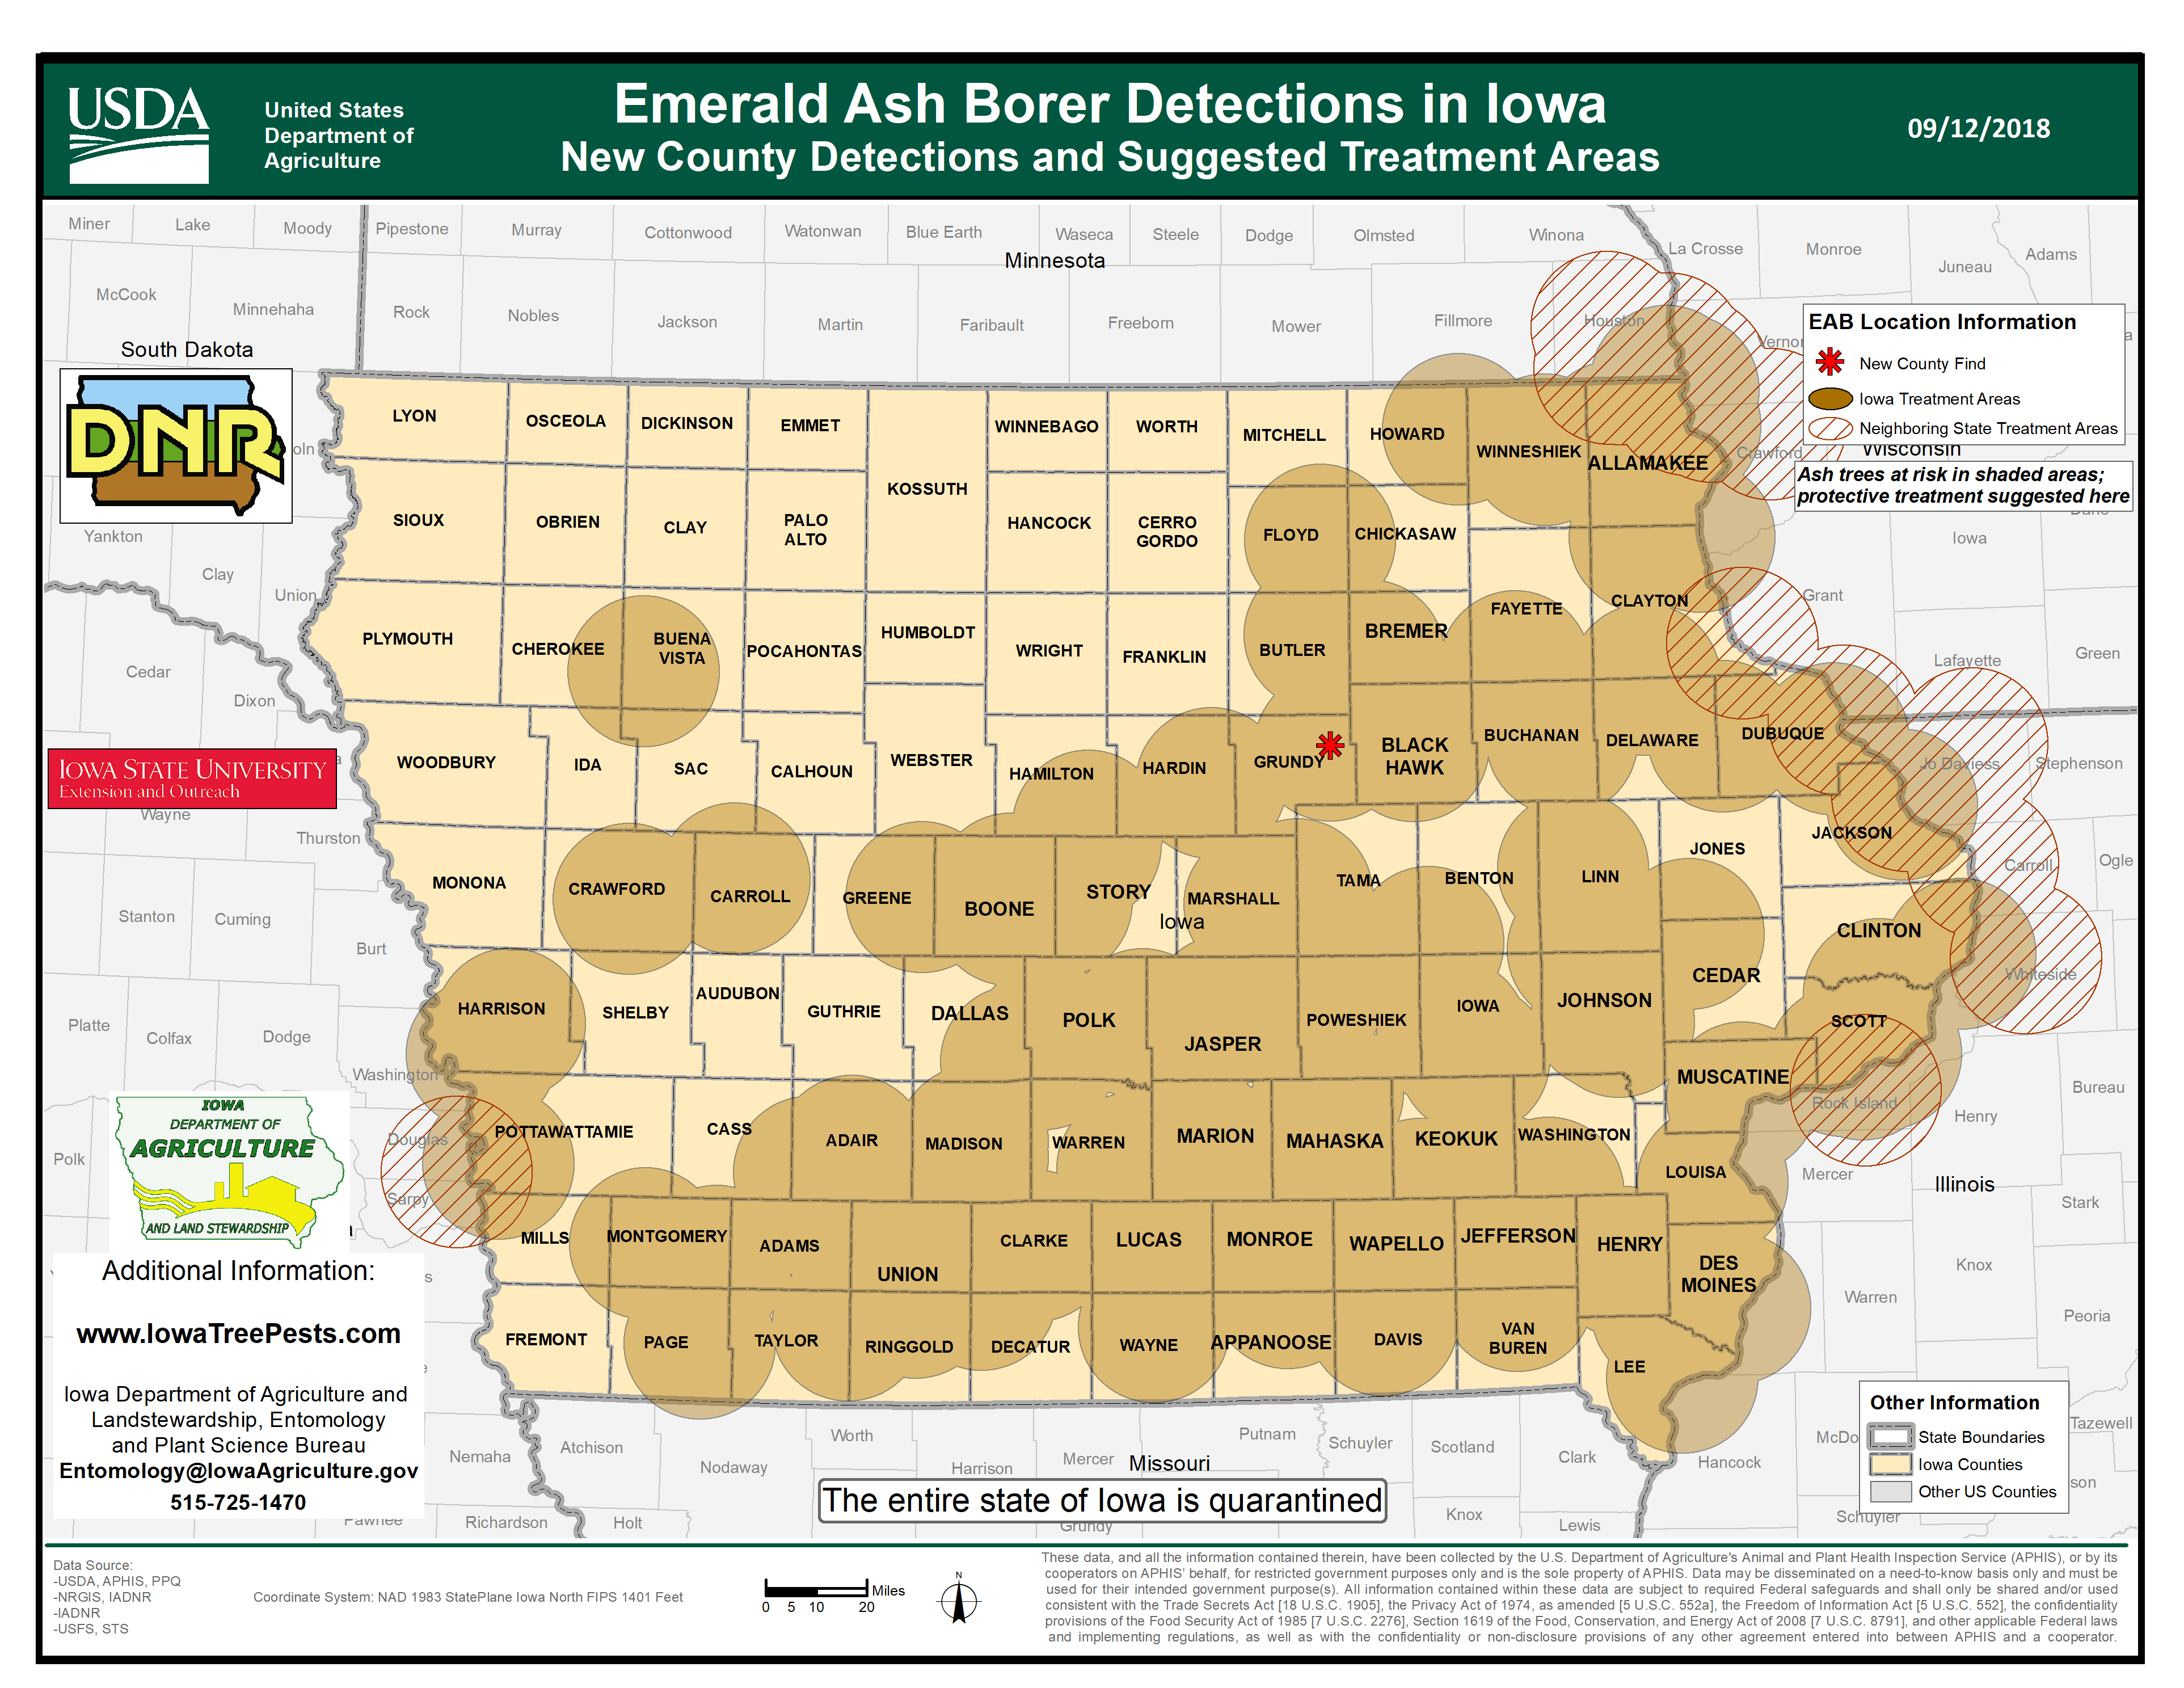 Map of Iowa showing current distribution of confirmed EAB infestations as of September 13, 2018.